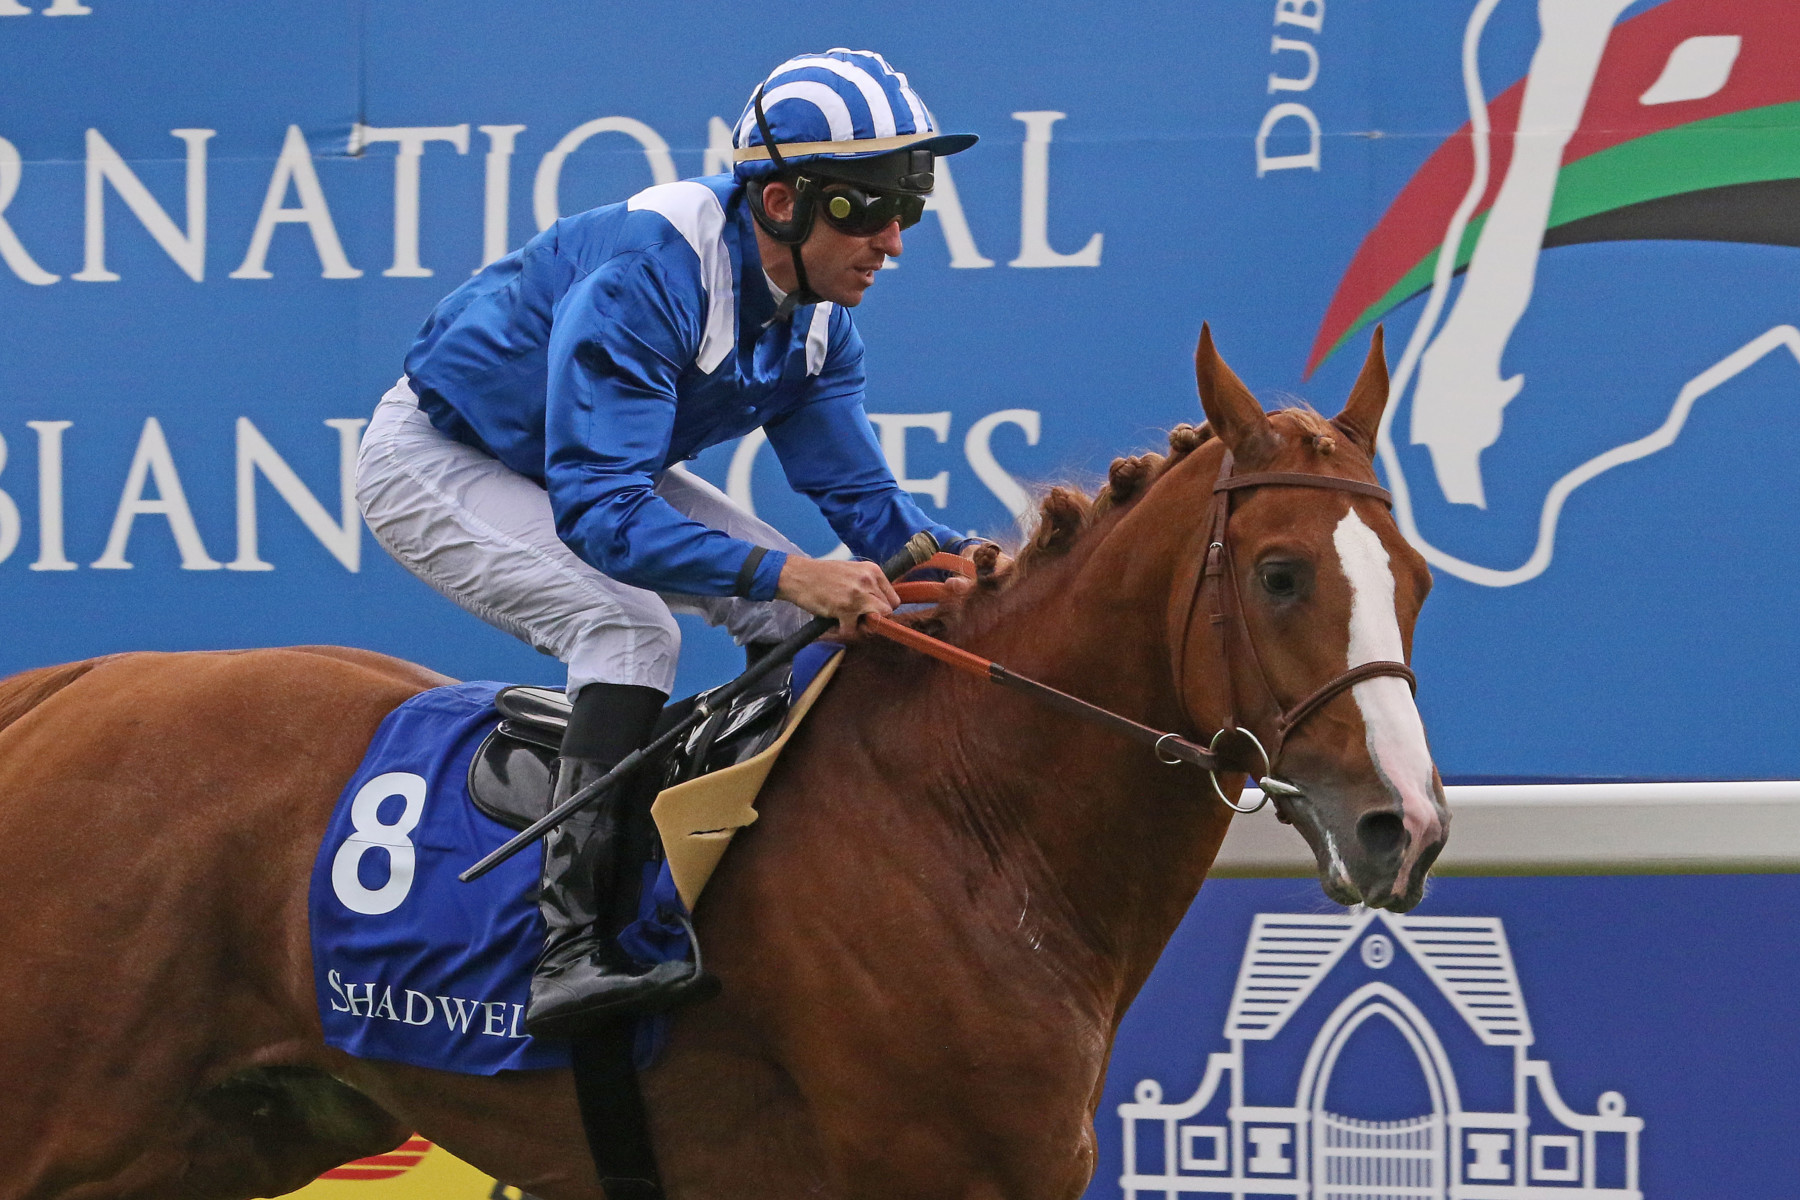 The Dubai International Arabian Races and its Anglo-French history